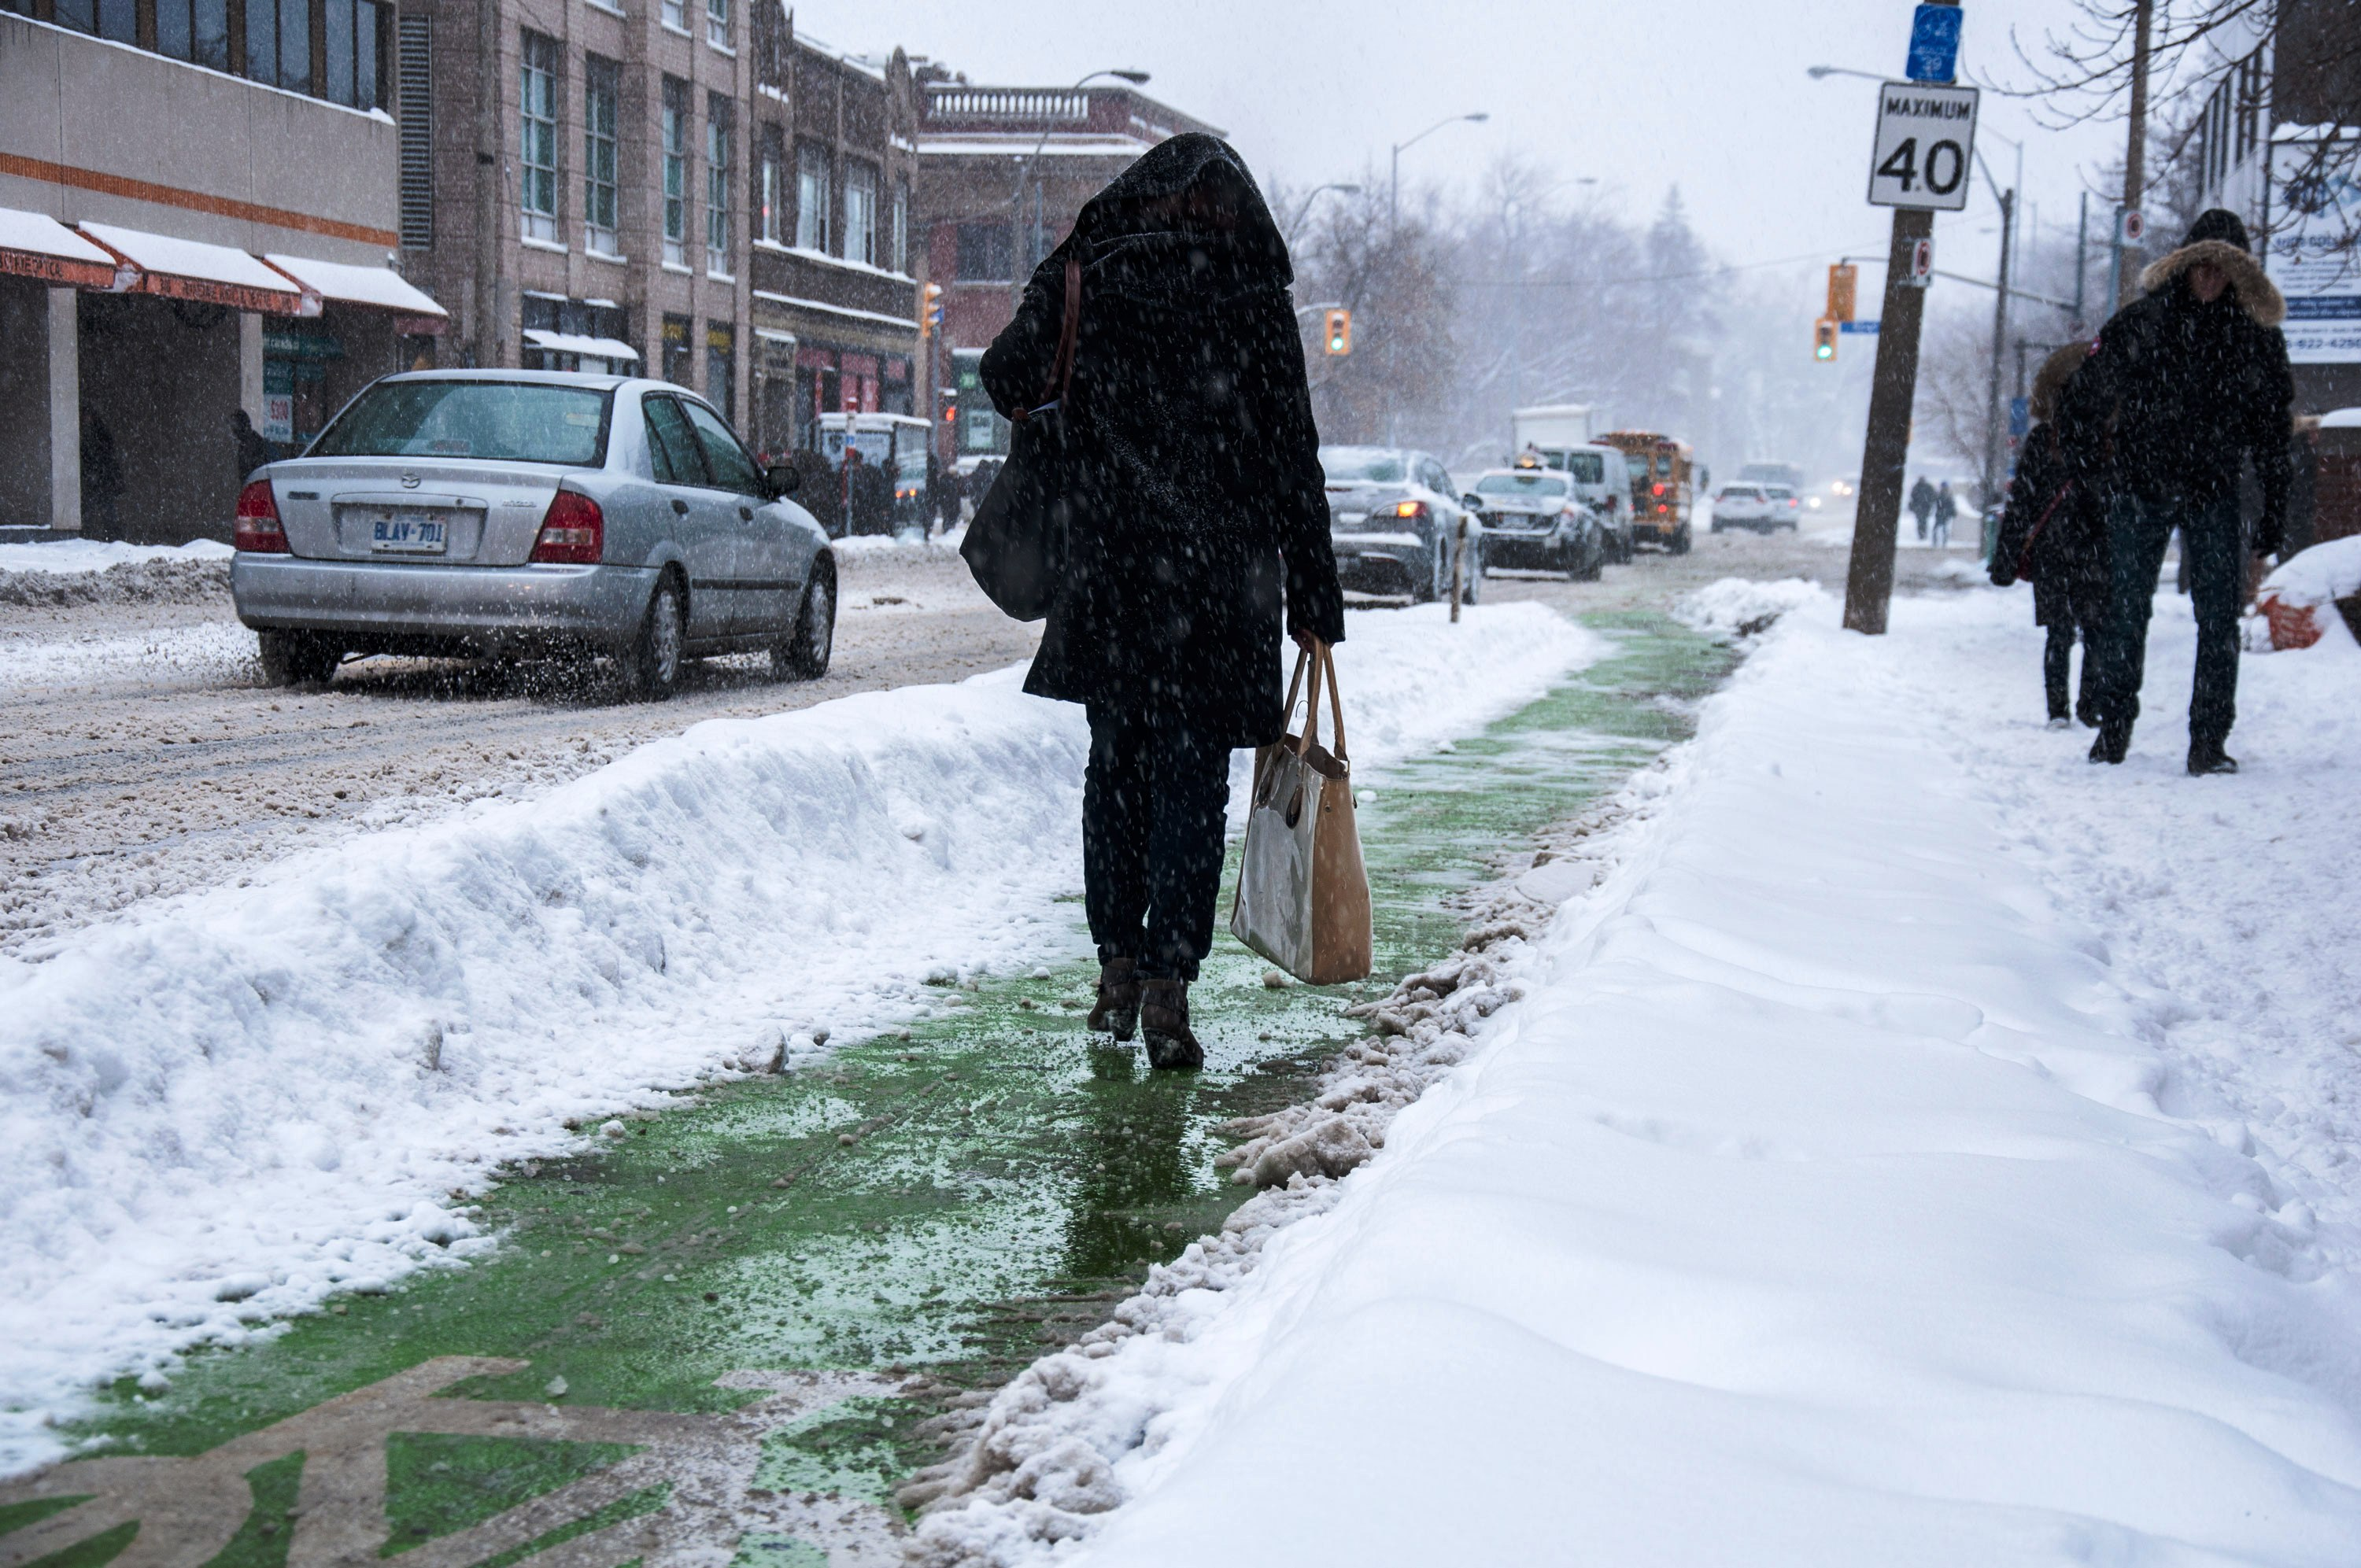 The City S Plan For Winter Clearance Of Bike Lanes